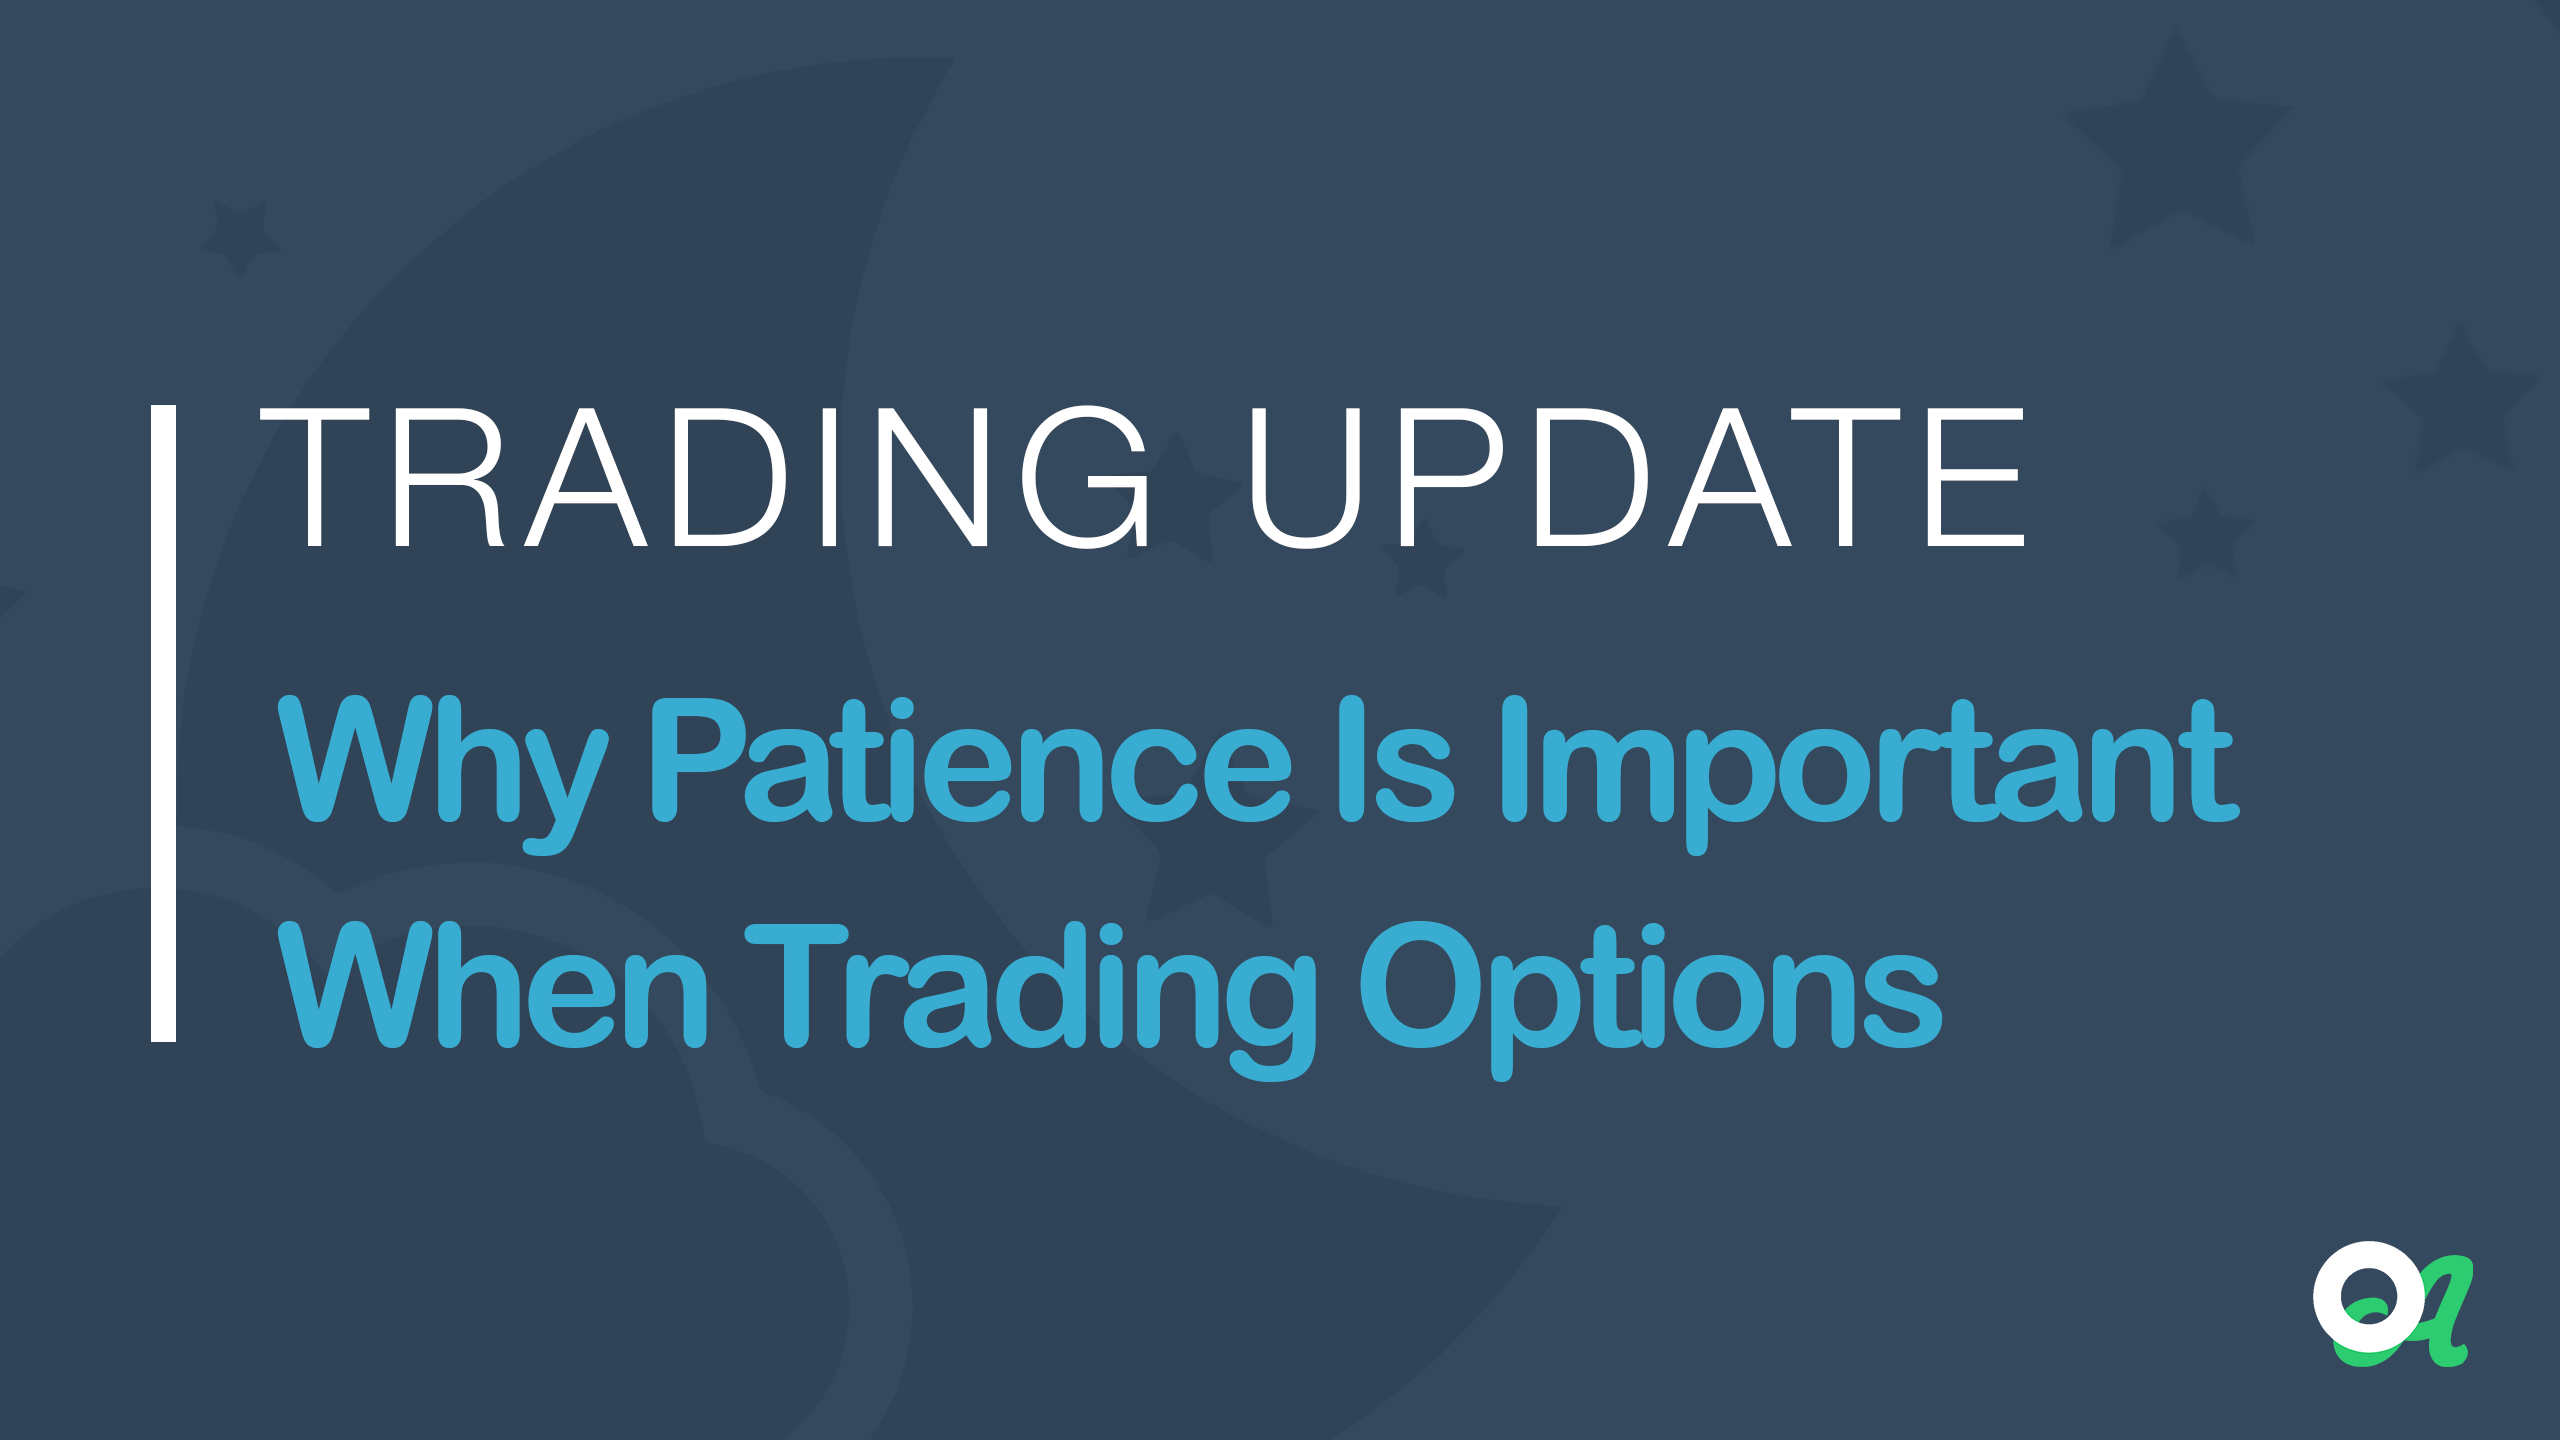 Why trade options